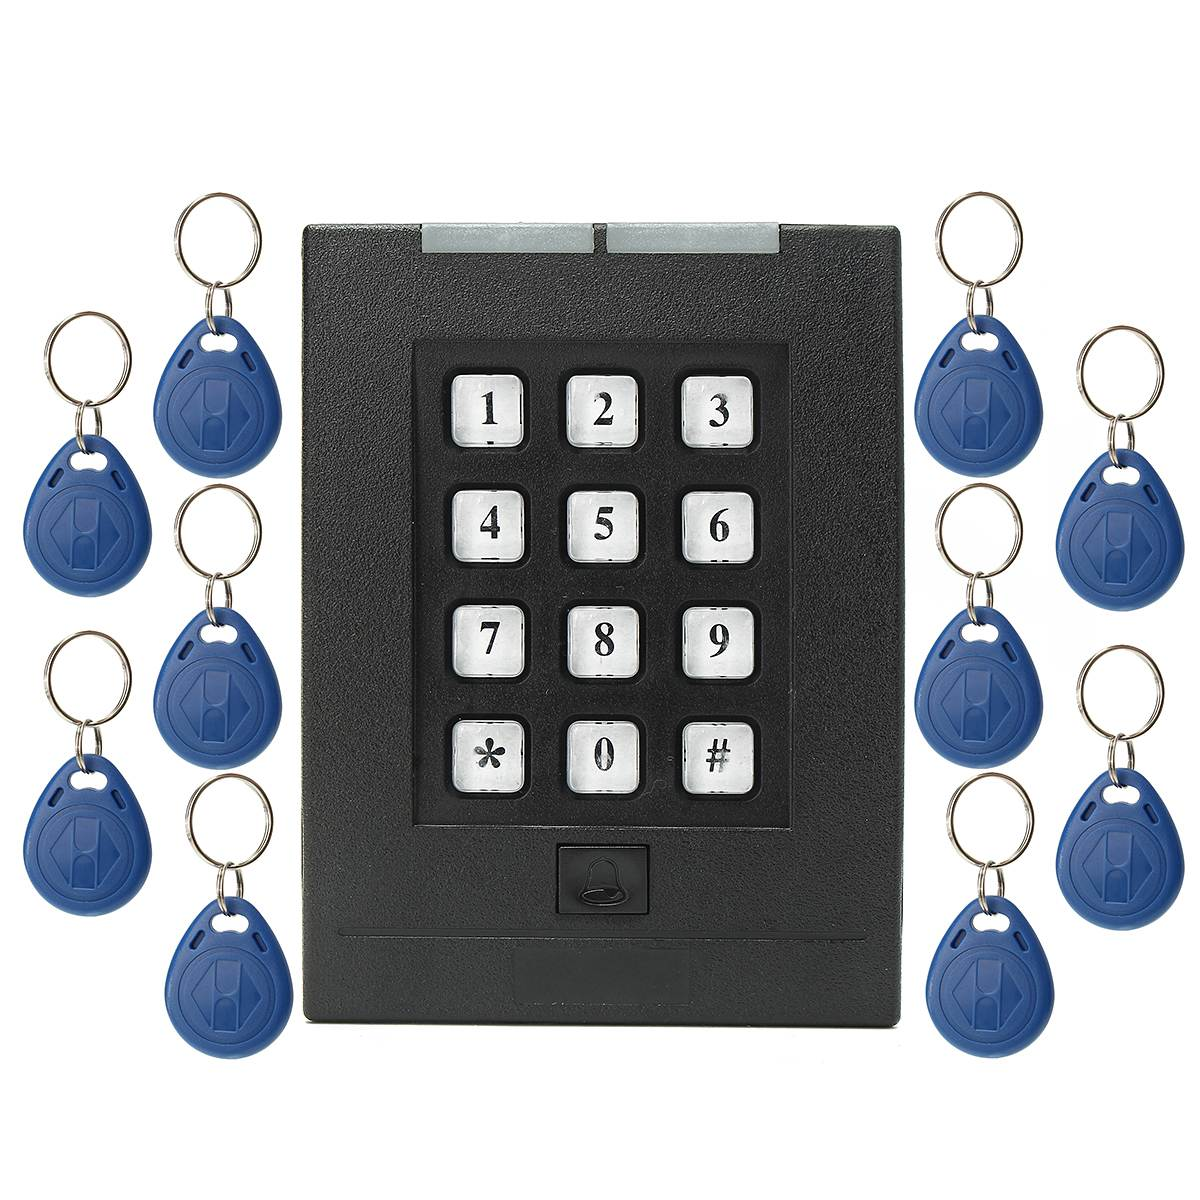 Safurance Home Security Electronic Door Access Control Keypad Password Code Lock +10 RFID ID Card Keyfob ned high security electronic induction smart digit code keypad entry door lock with id reader right handle and card unlock